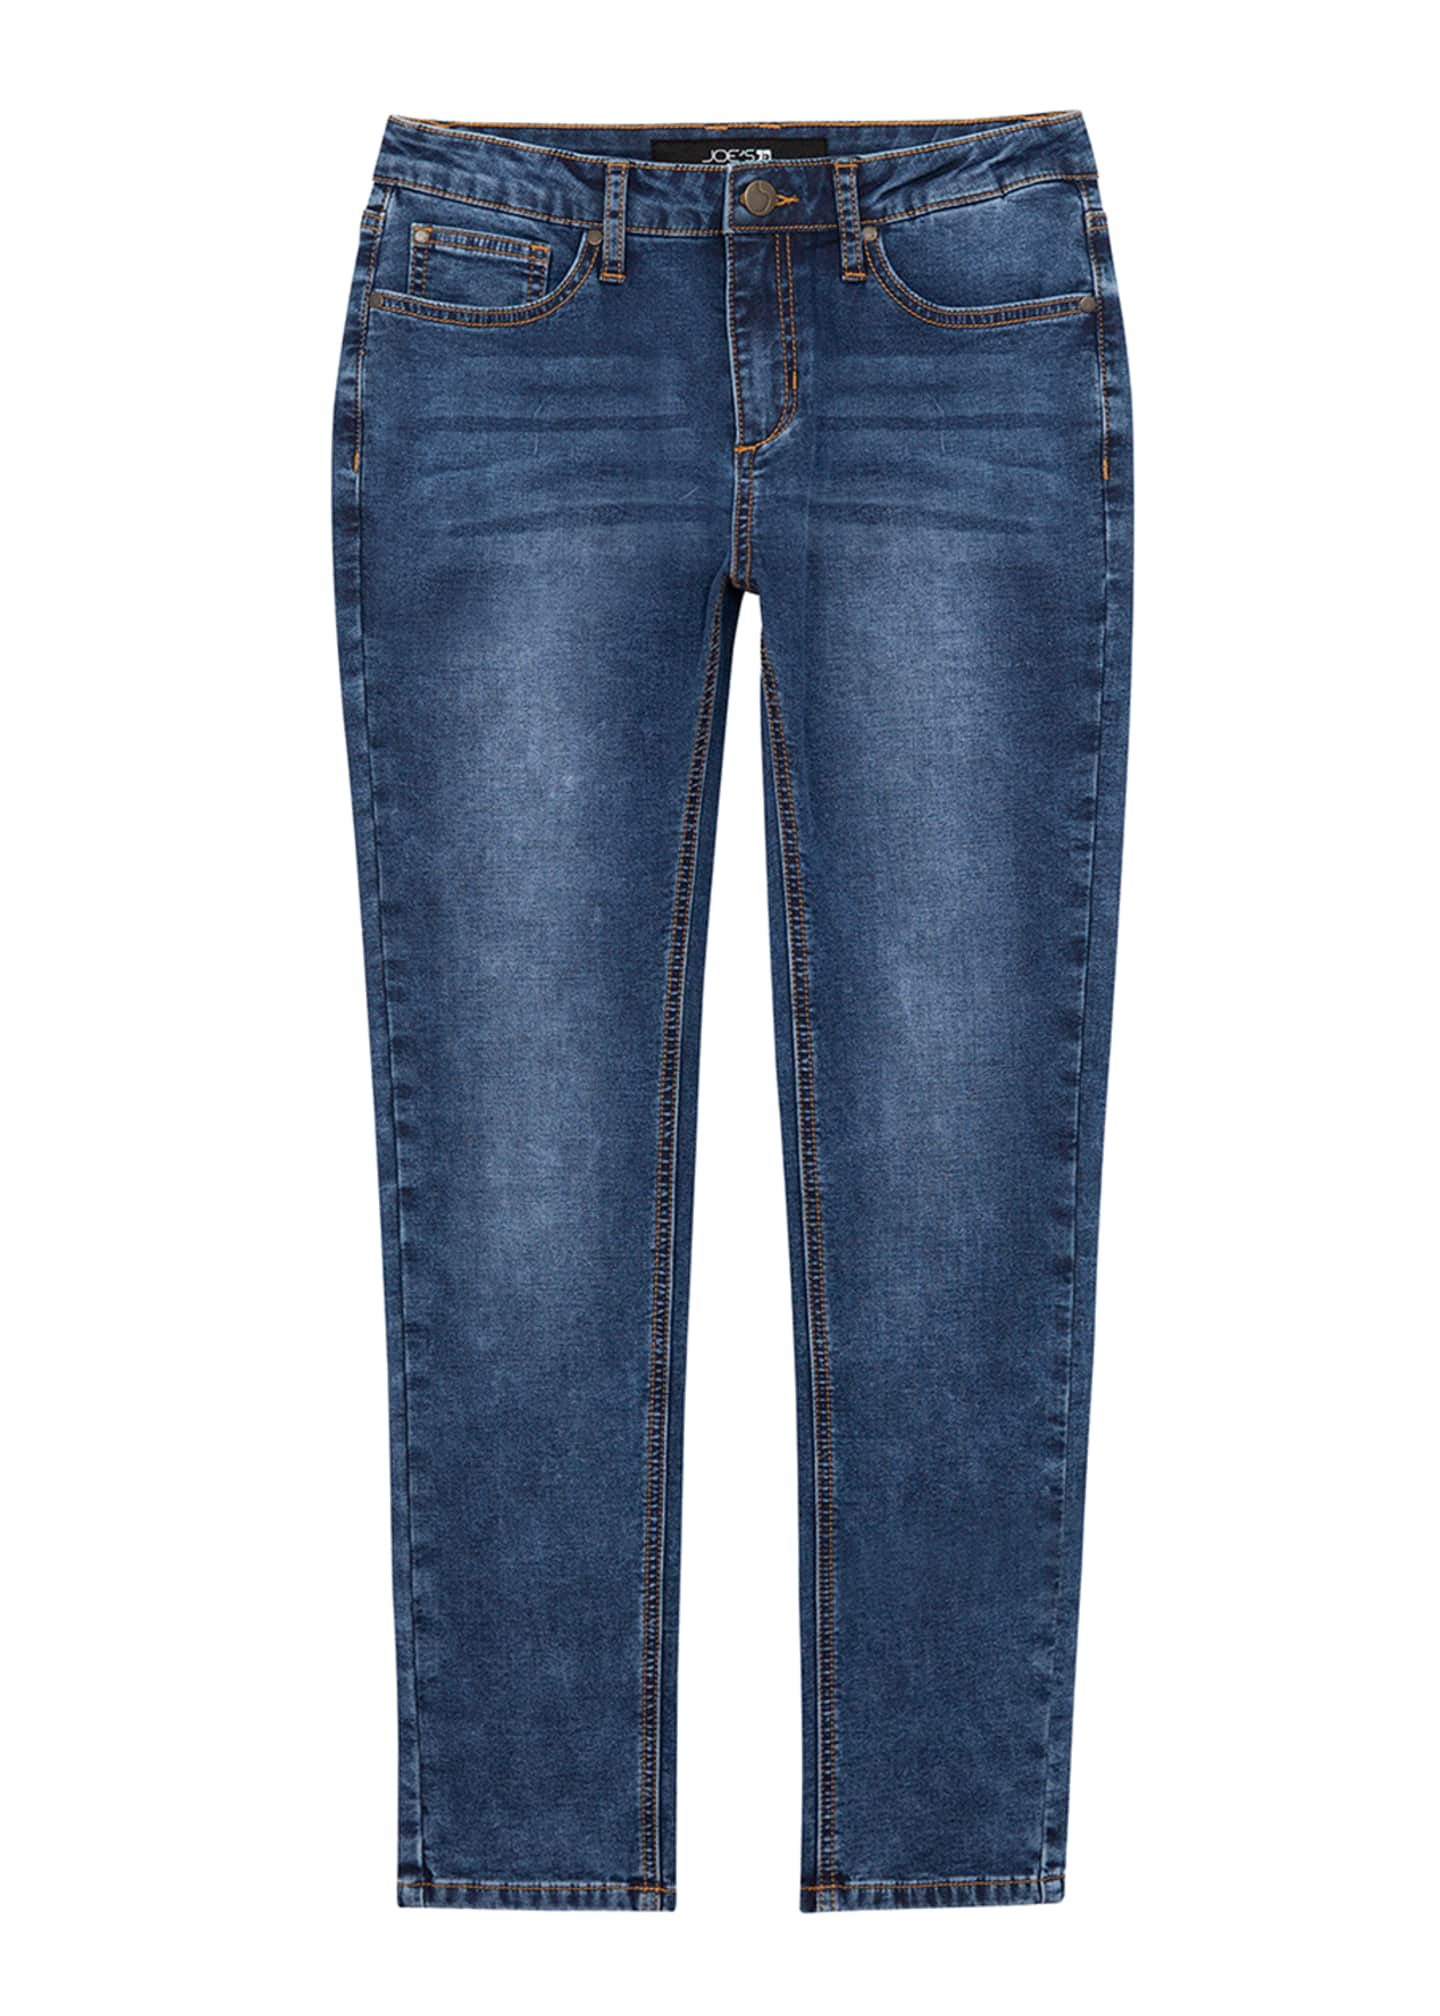 Boy's Legend Skinny Denim Jeans, Size 4-7